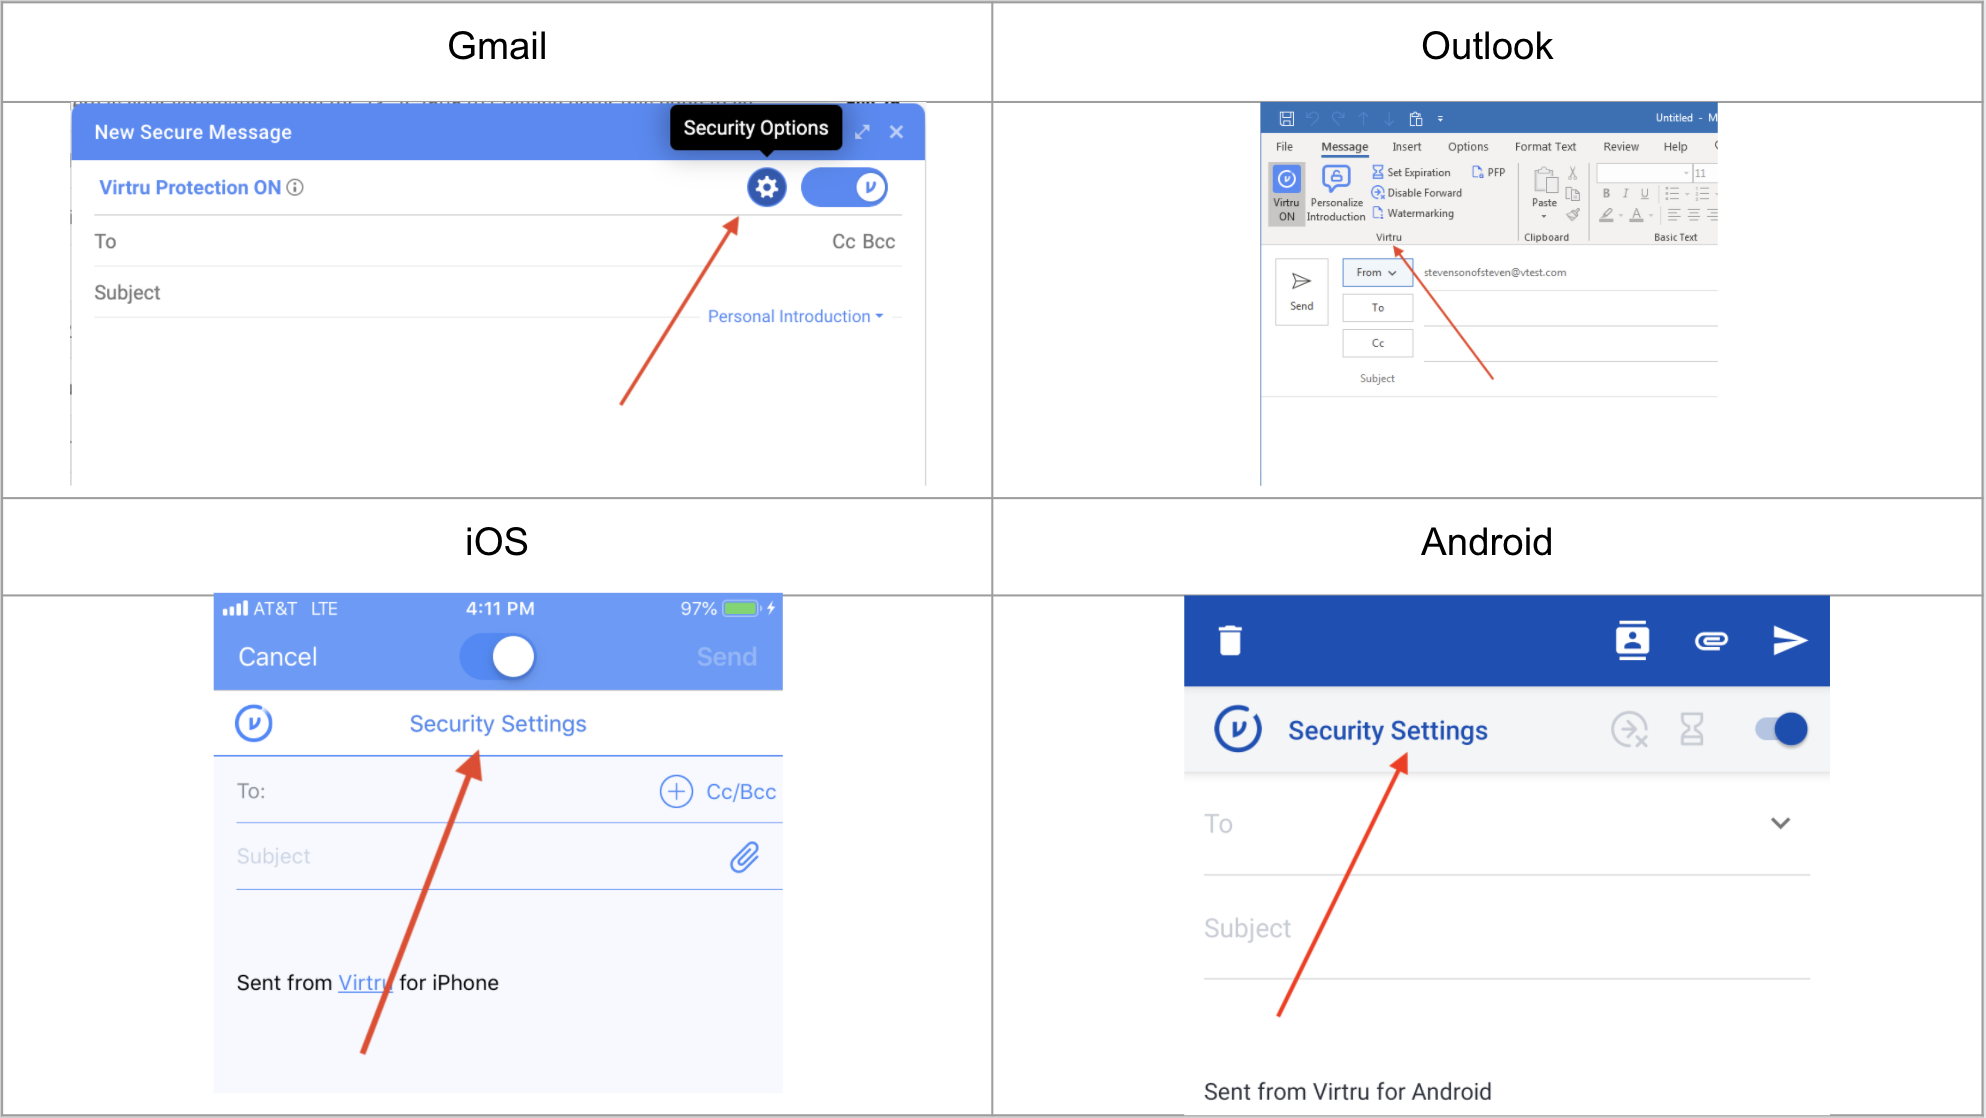 Security options location indicated in Virtru for Gmail, Outlook, iOS and Android interfaces